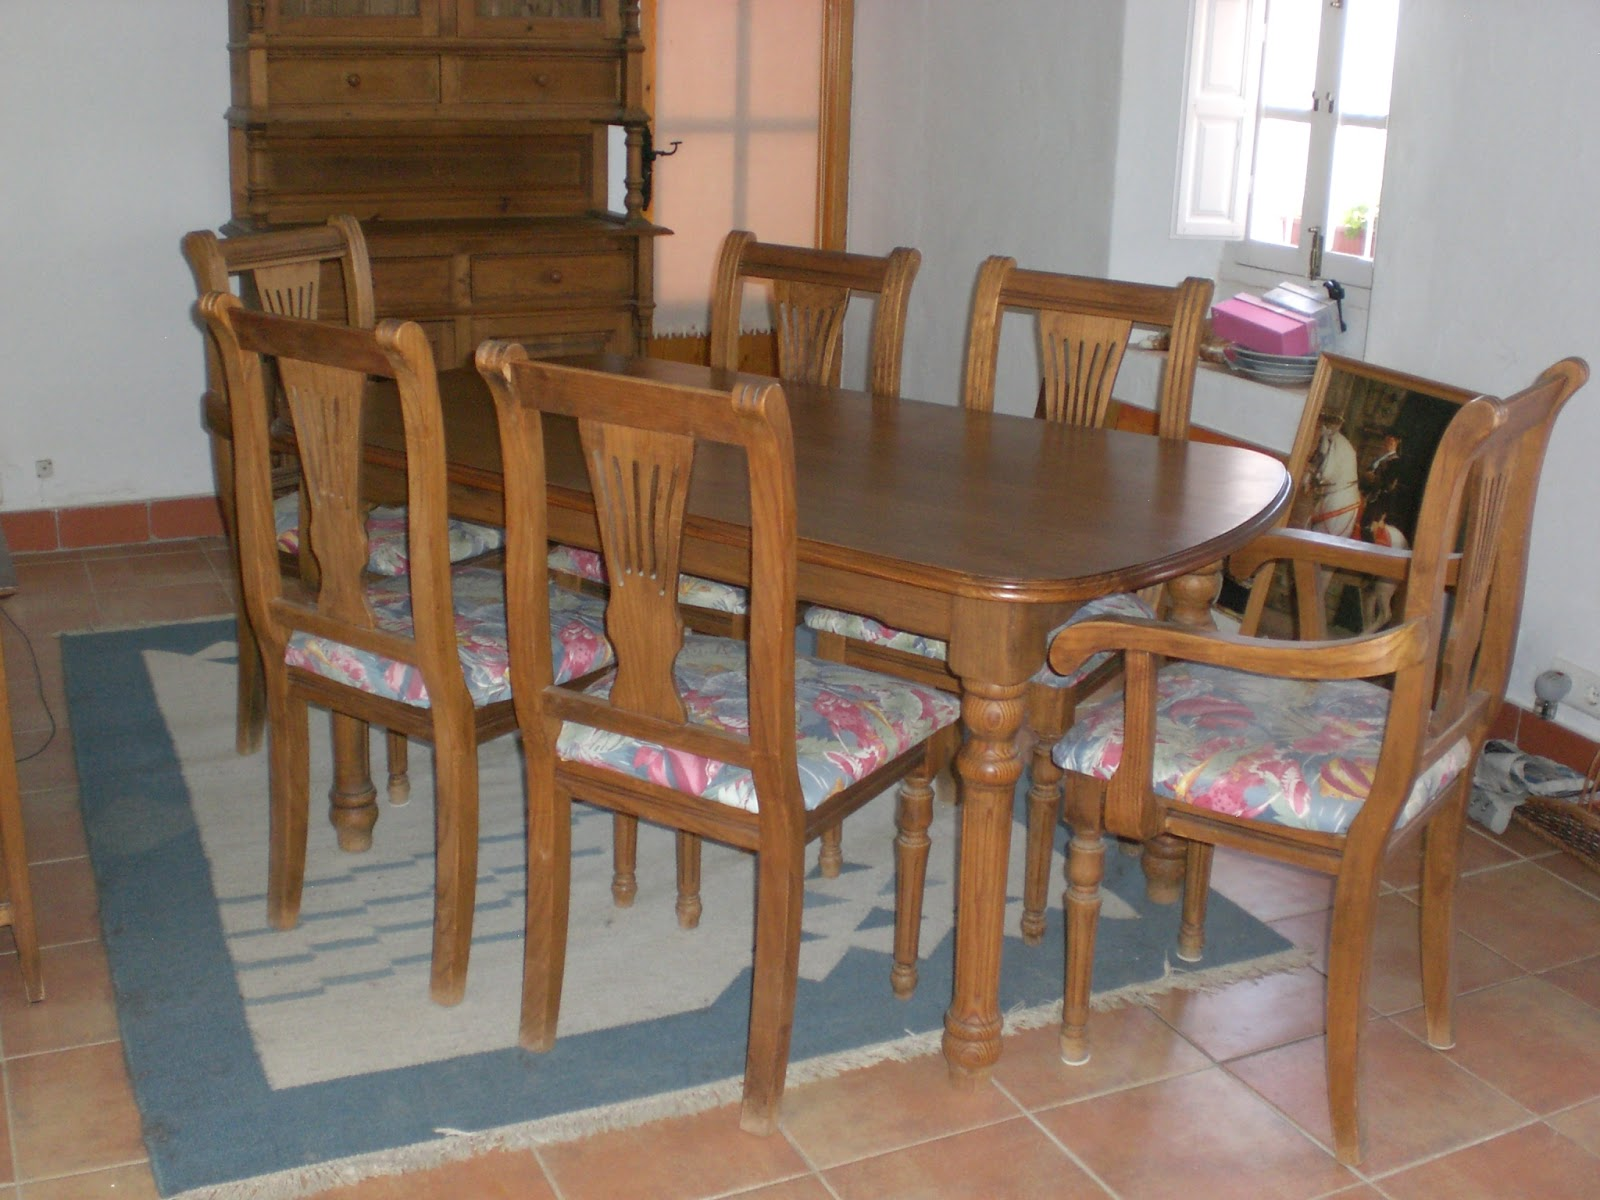 Digame for sale dining room furniture for Dining room furniture for sale